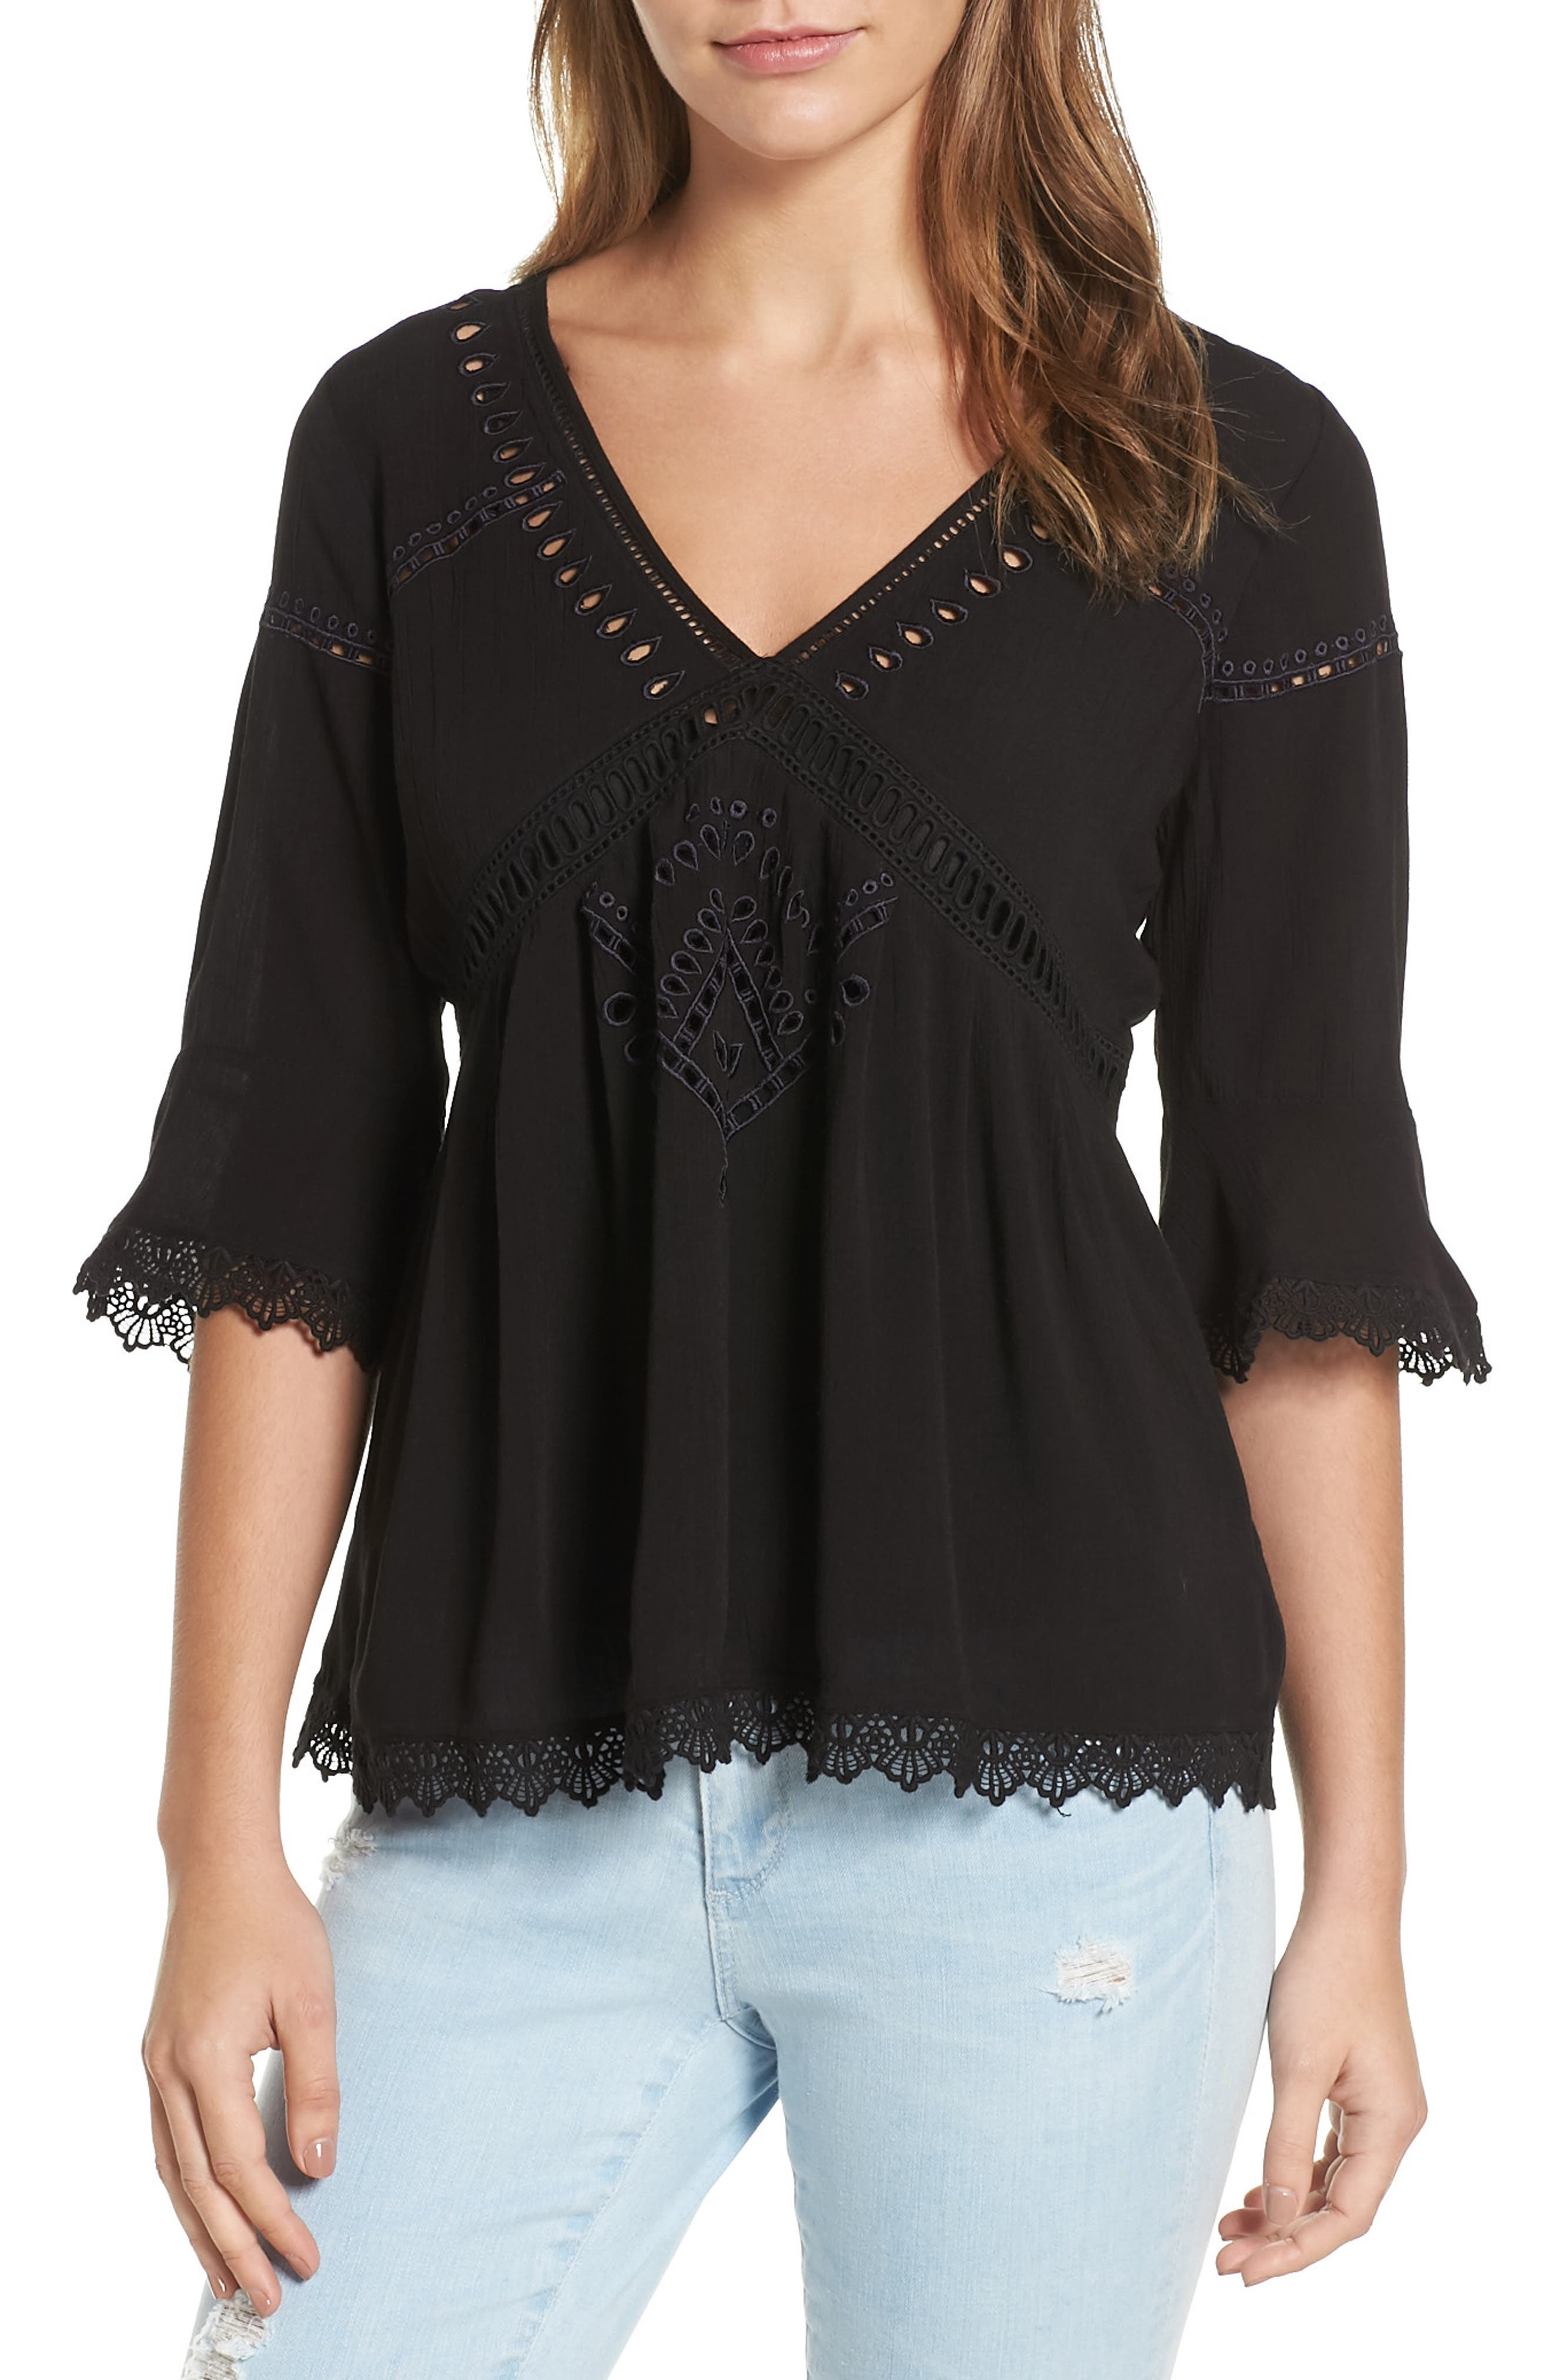 Alternate Image 1 Selected - Ella Moss Broderie Anglaise Top